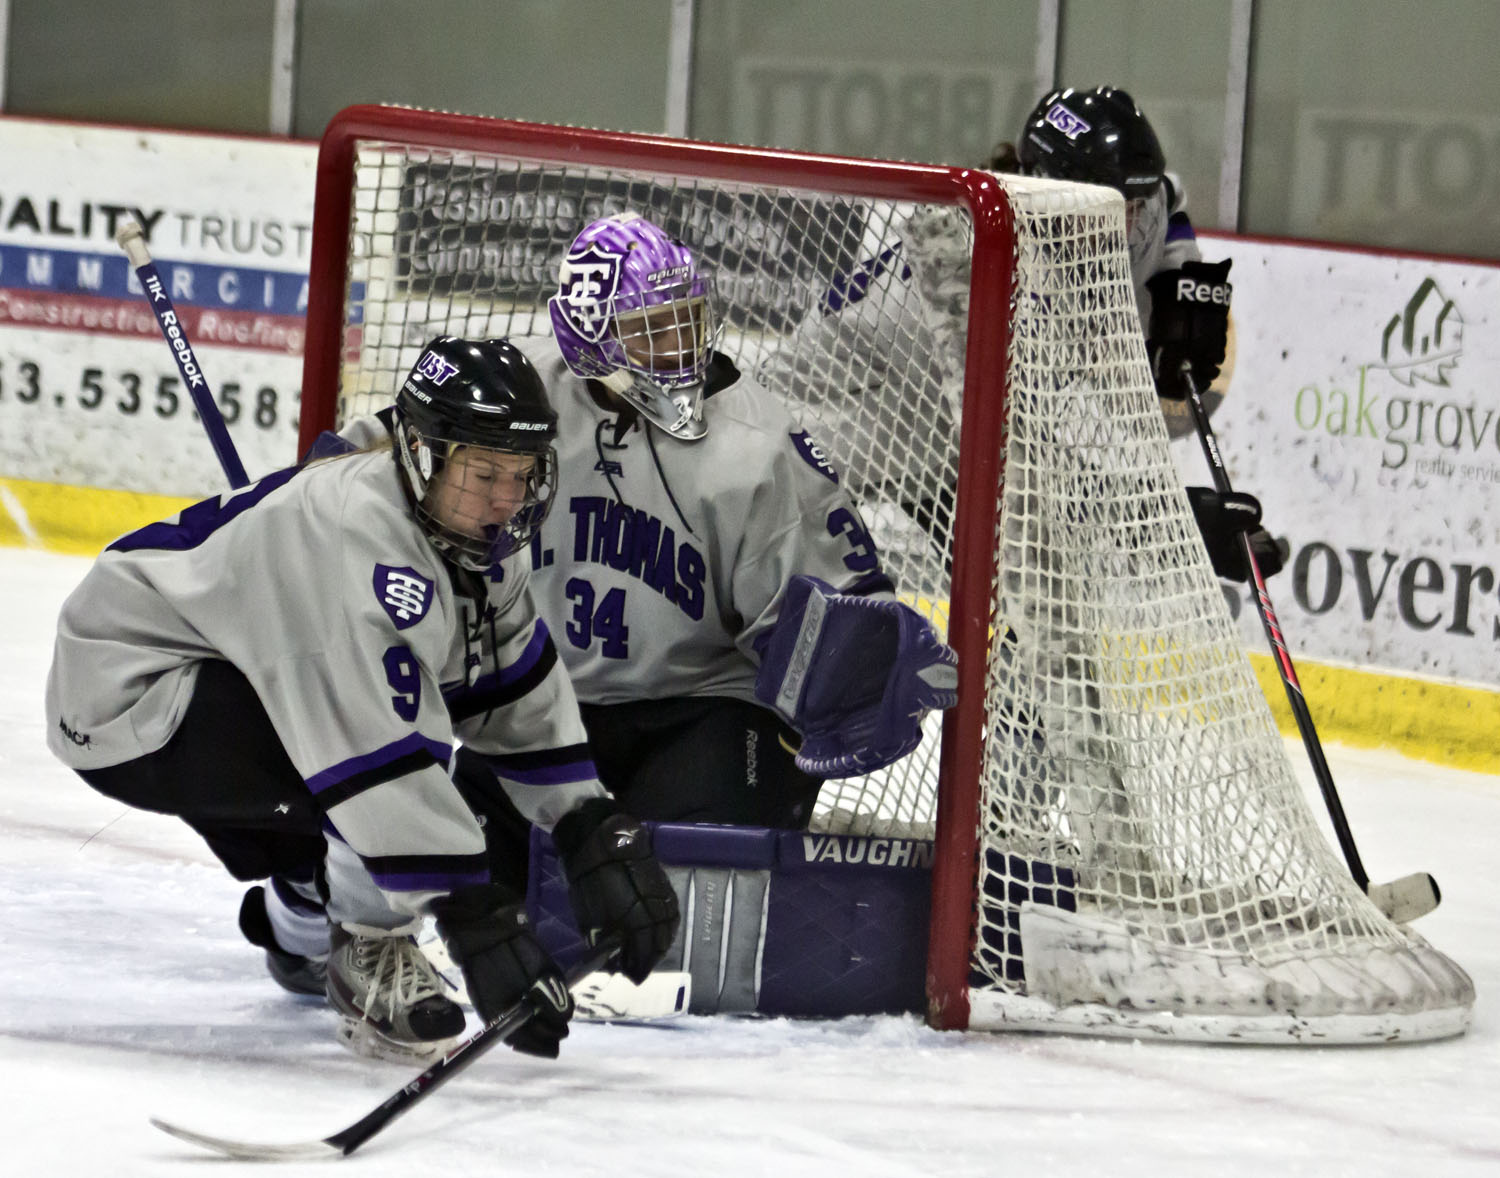 Saves carry women's hockey to 1-1 draw with Cobbers